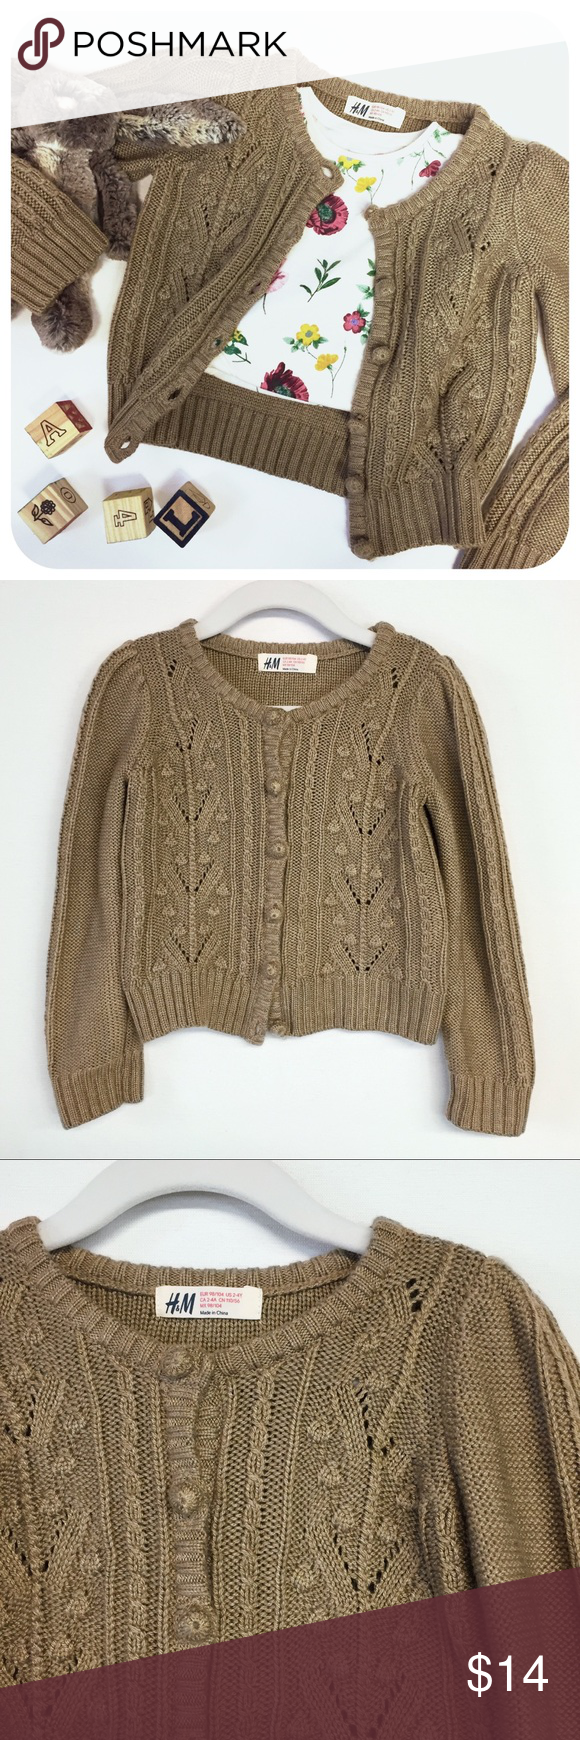 H&M }} Kids Caramel Brown Cable Knit Cardigan -- H&M Shirts & Tops ...